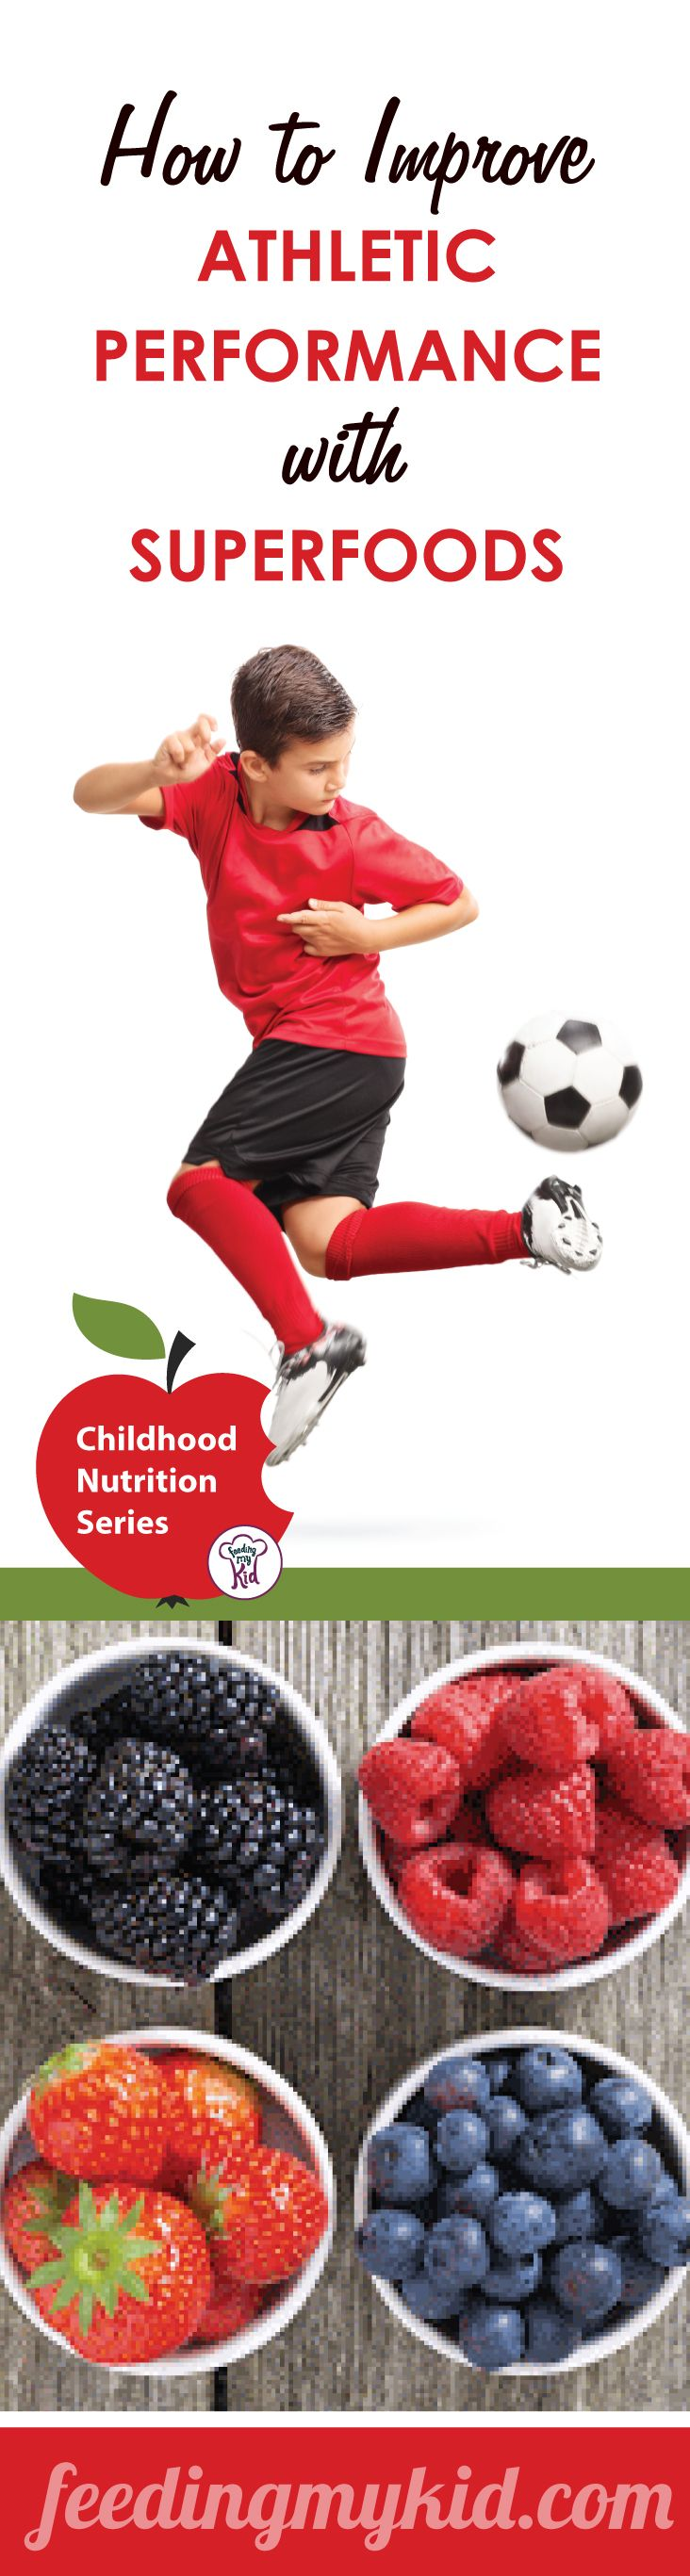 How to Improve Athletic Performance with Superfoods - Check out all these amazing foods your child can eat that will give him the energy he needs to beat the game! These amazing foods are called superfoods! Check them out!